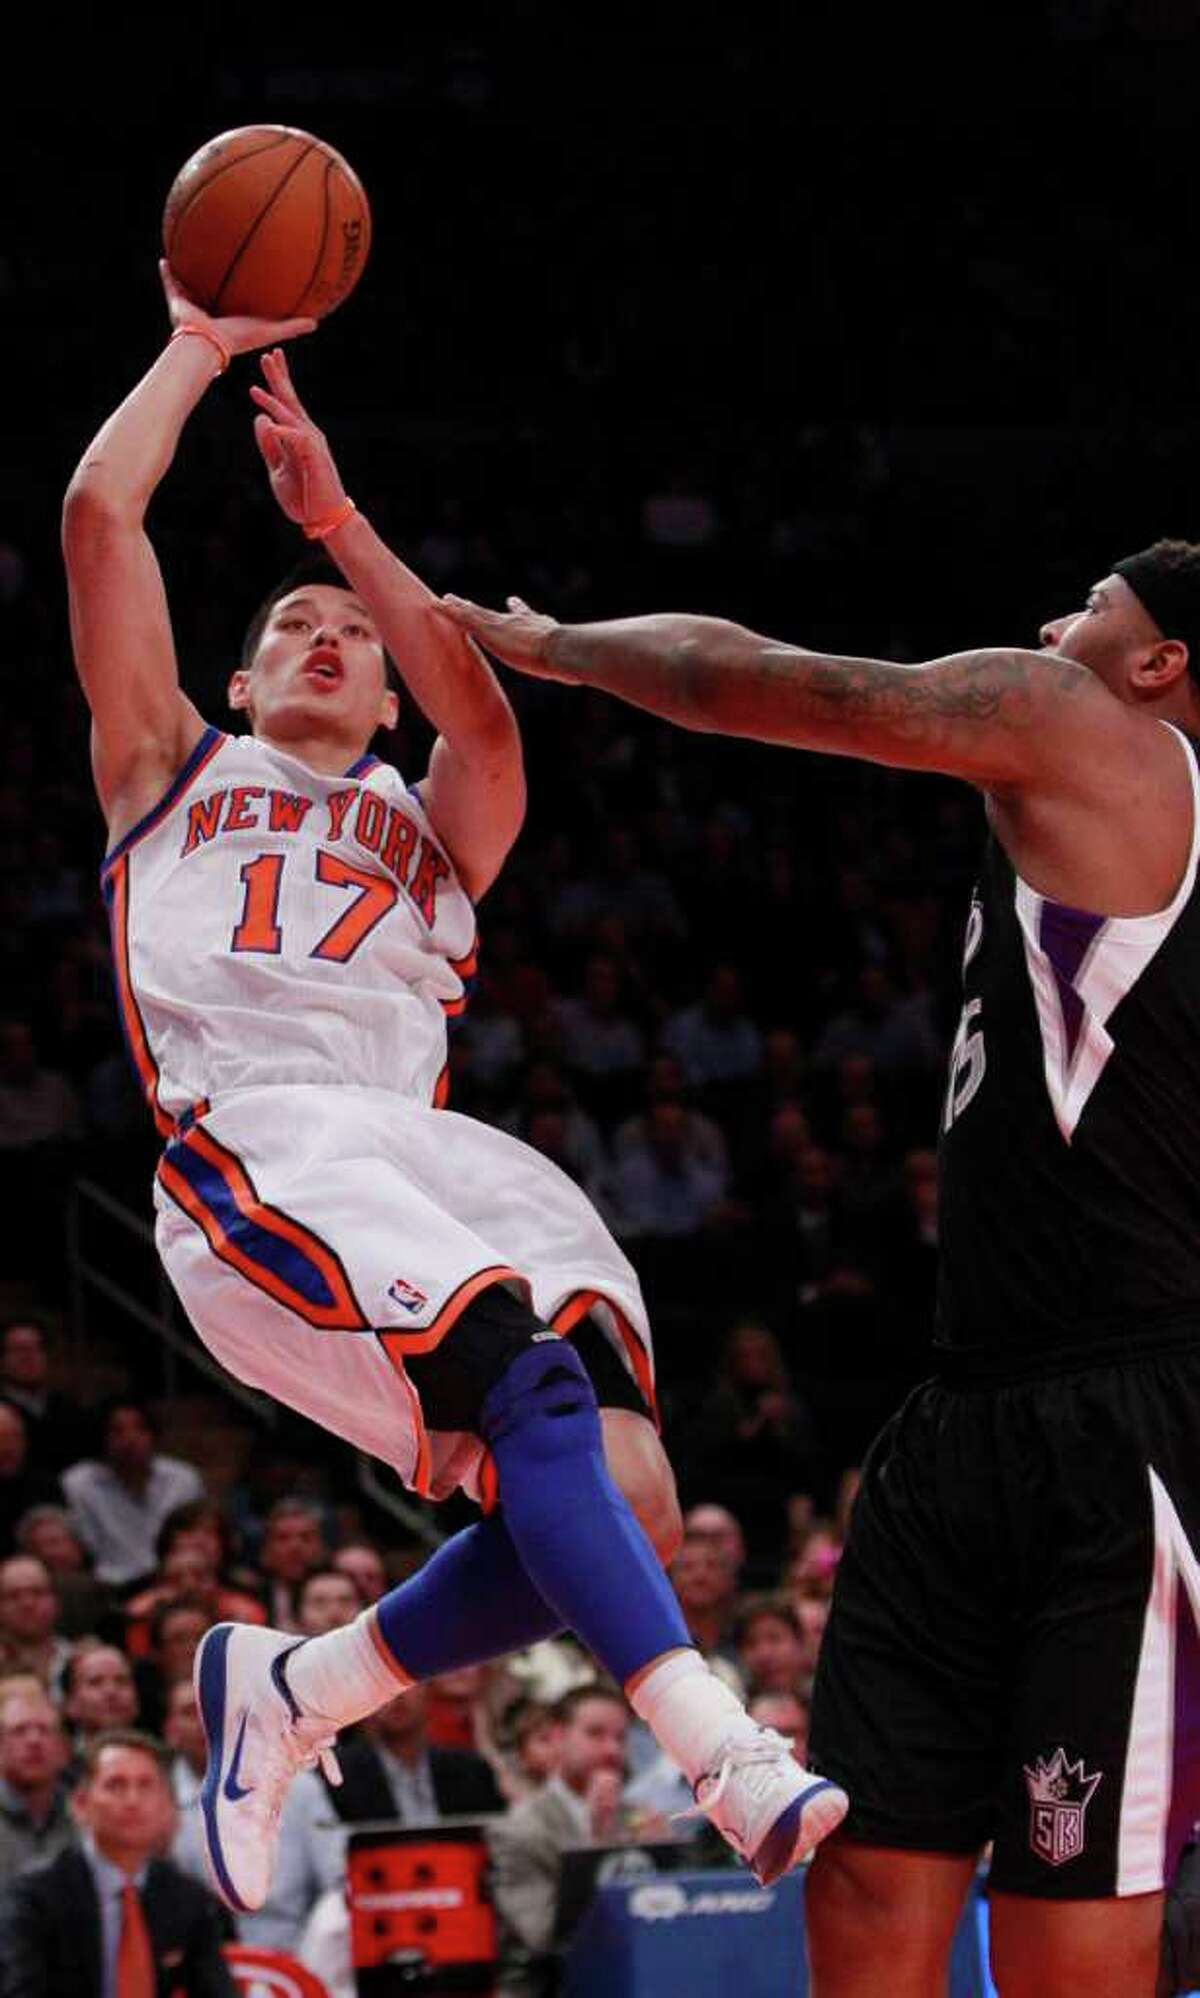 New York Knicks' Jeremy Lin (17) shoots over Sacramento Kings' DeMarcus Cousins during the first half of an NBA basketball game on Wednesday, Feb. 15, 2012, in New York. (AP Photo/Frank Franklin II)